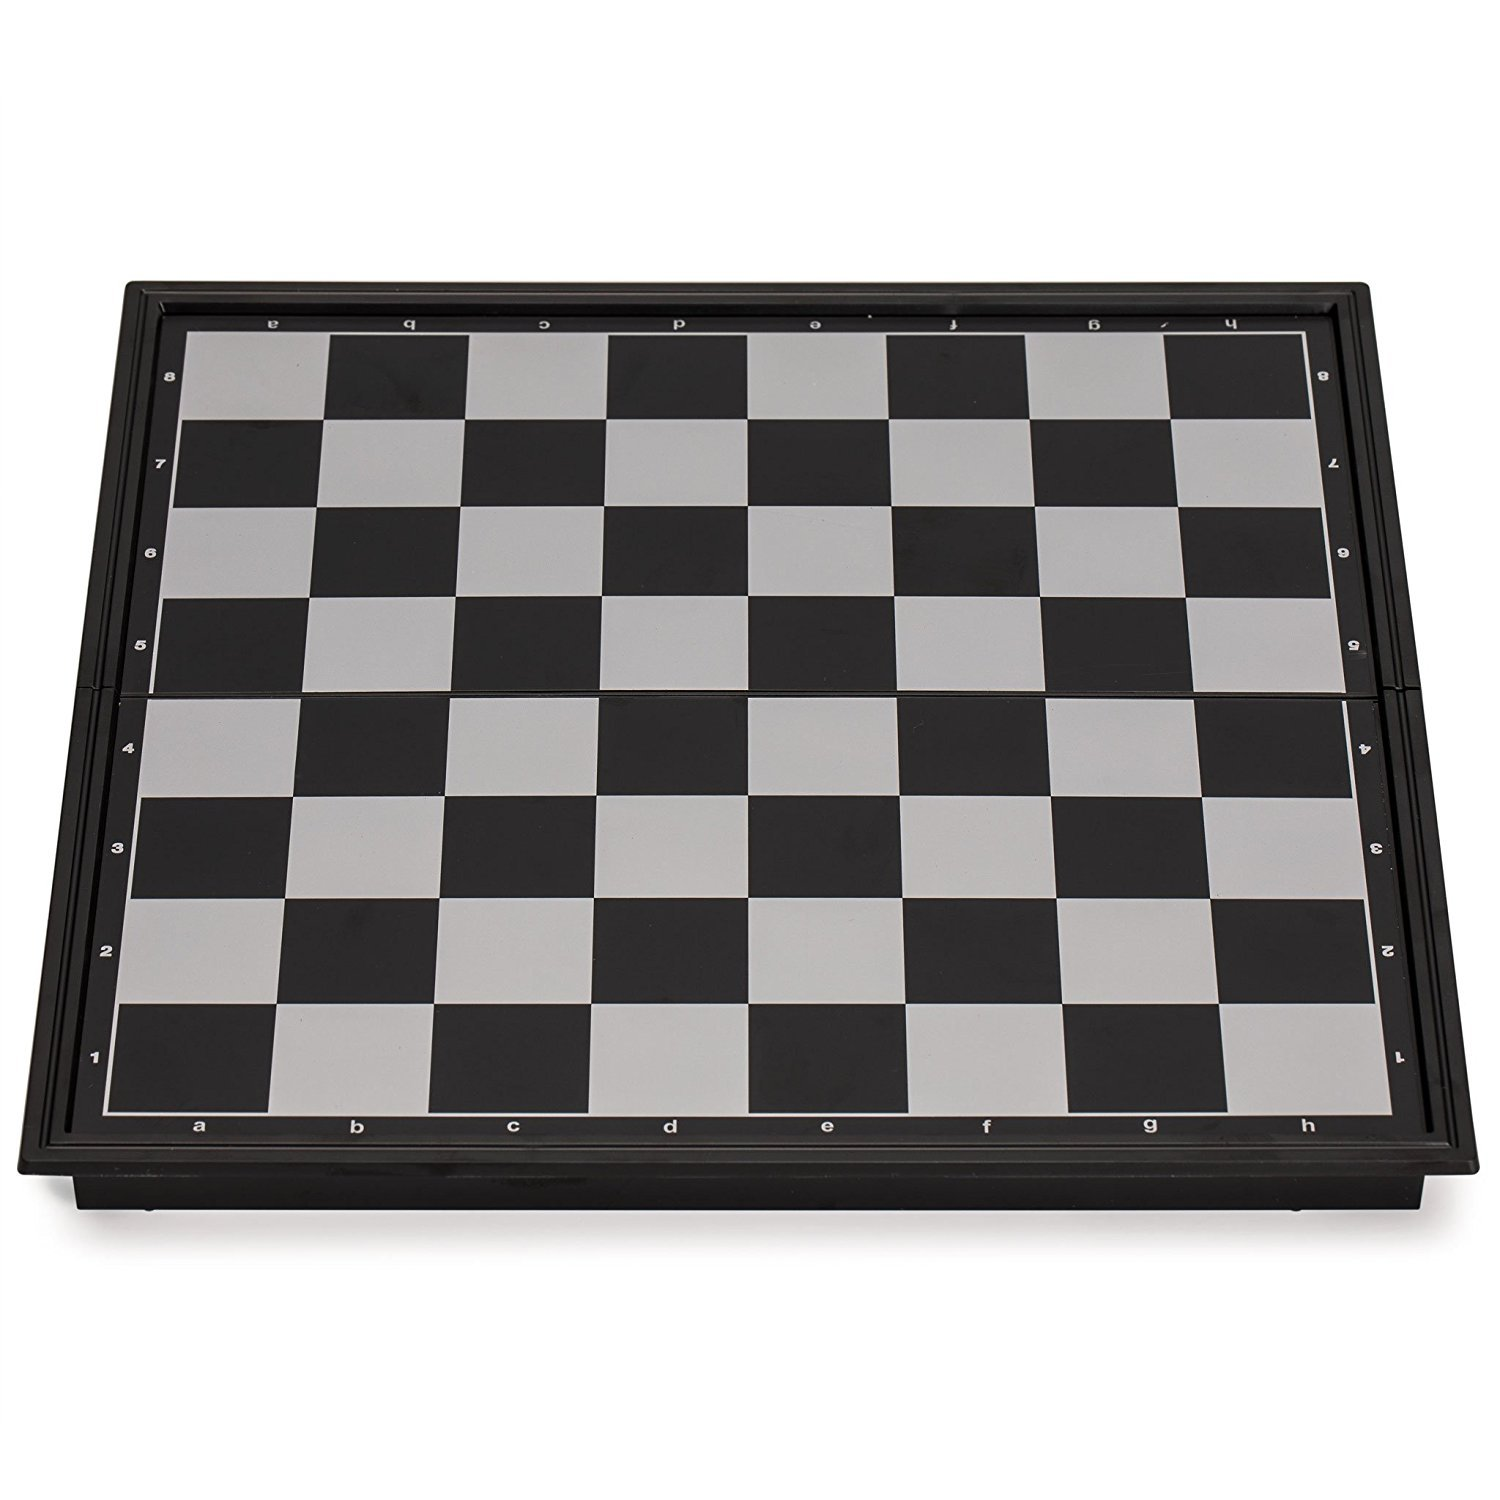 Cafele Magnetic Travel Chess Set Folding Chess Board Educational Toys Kids Adults